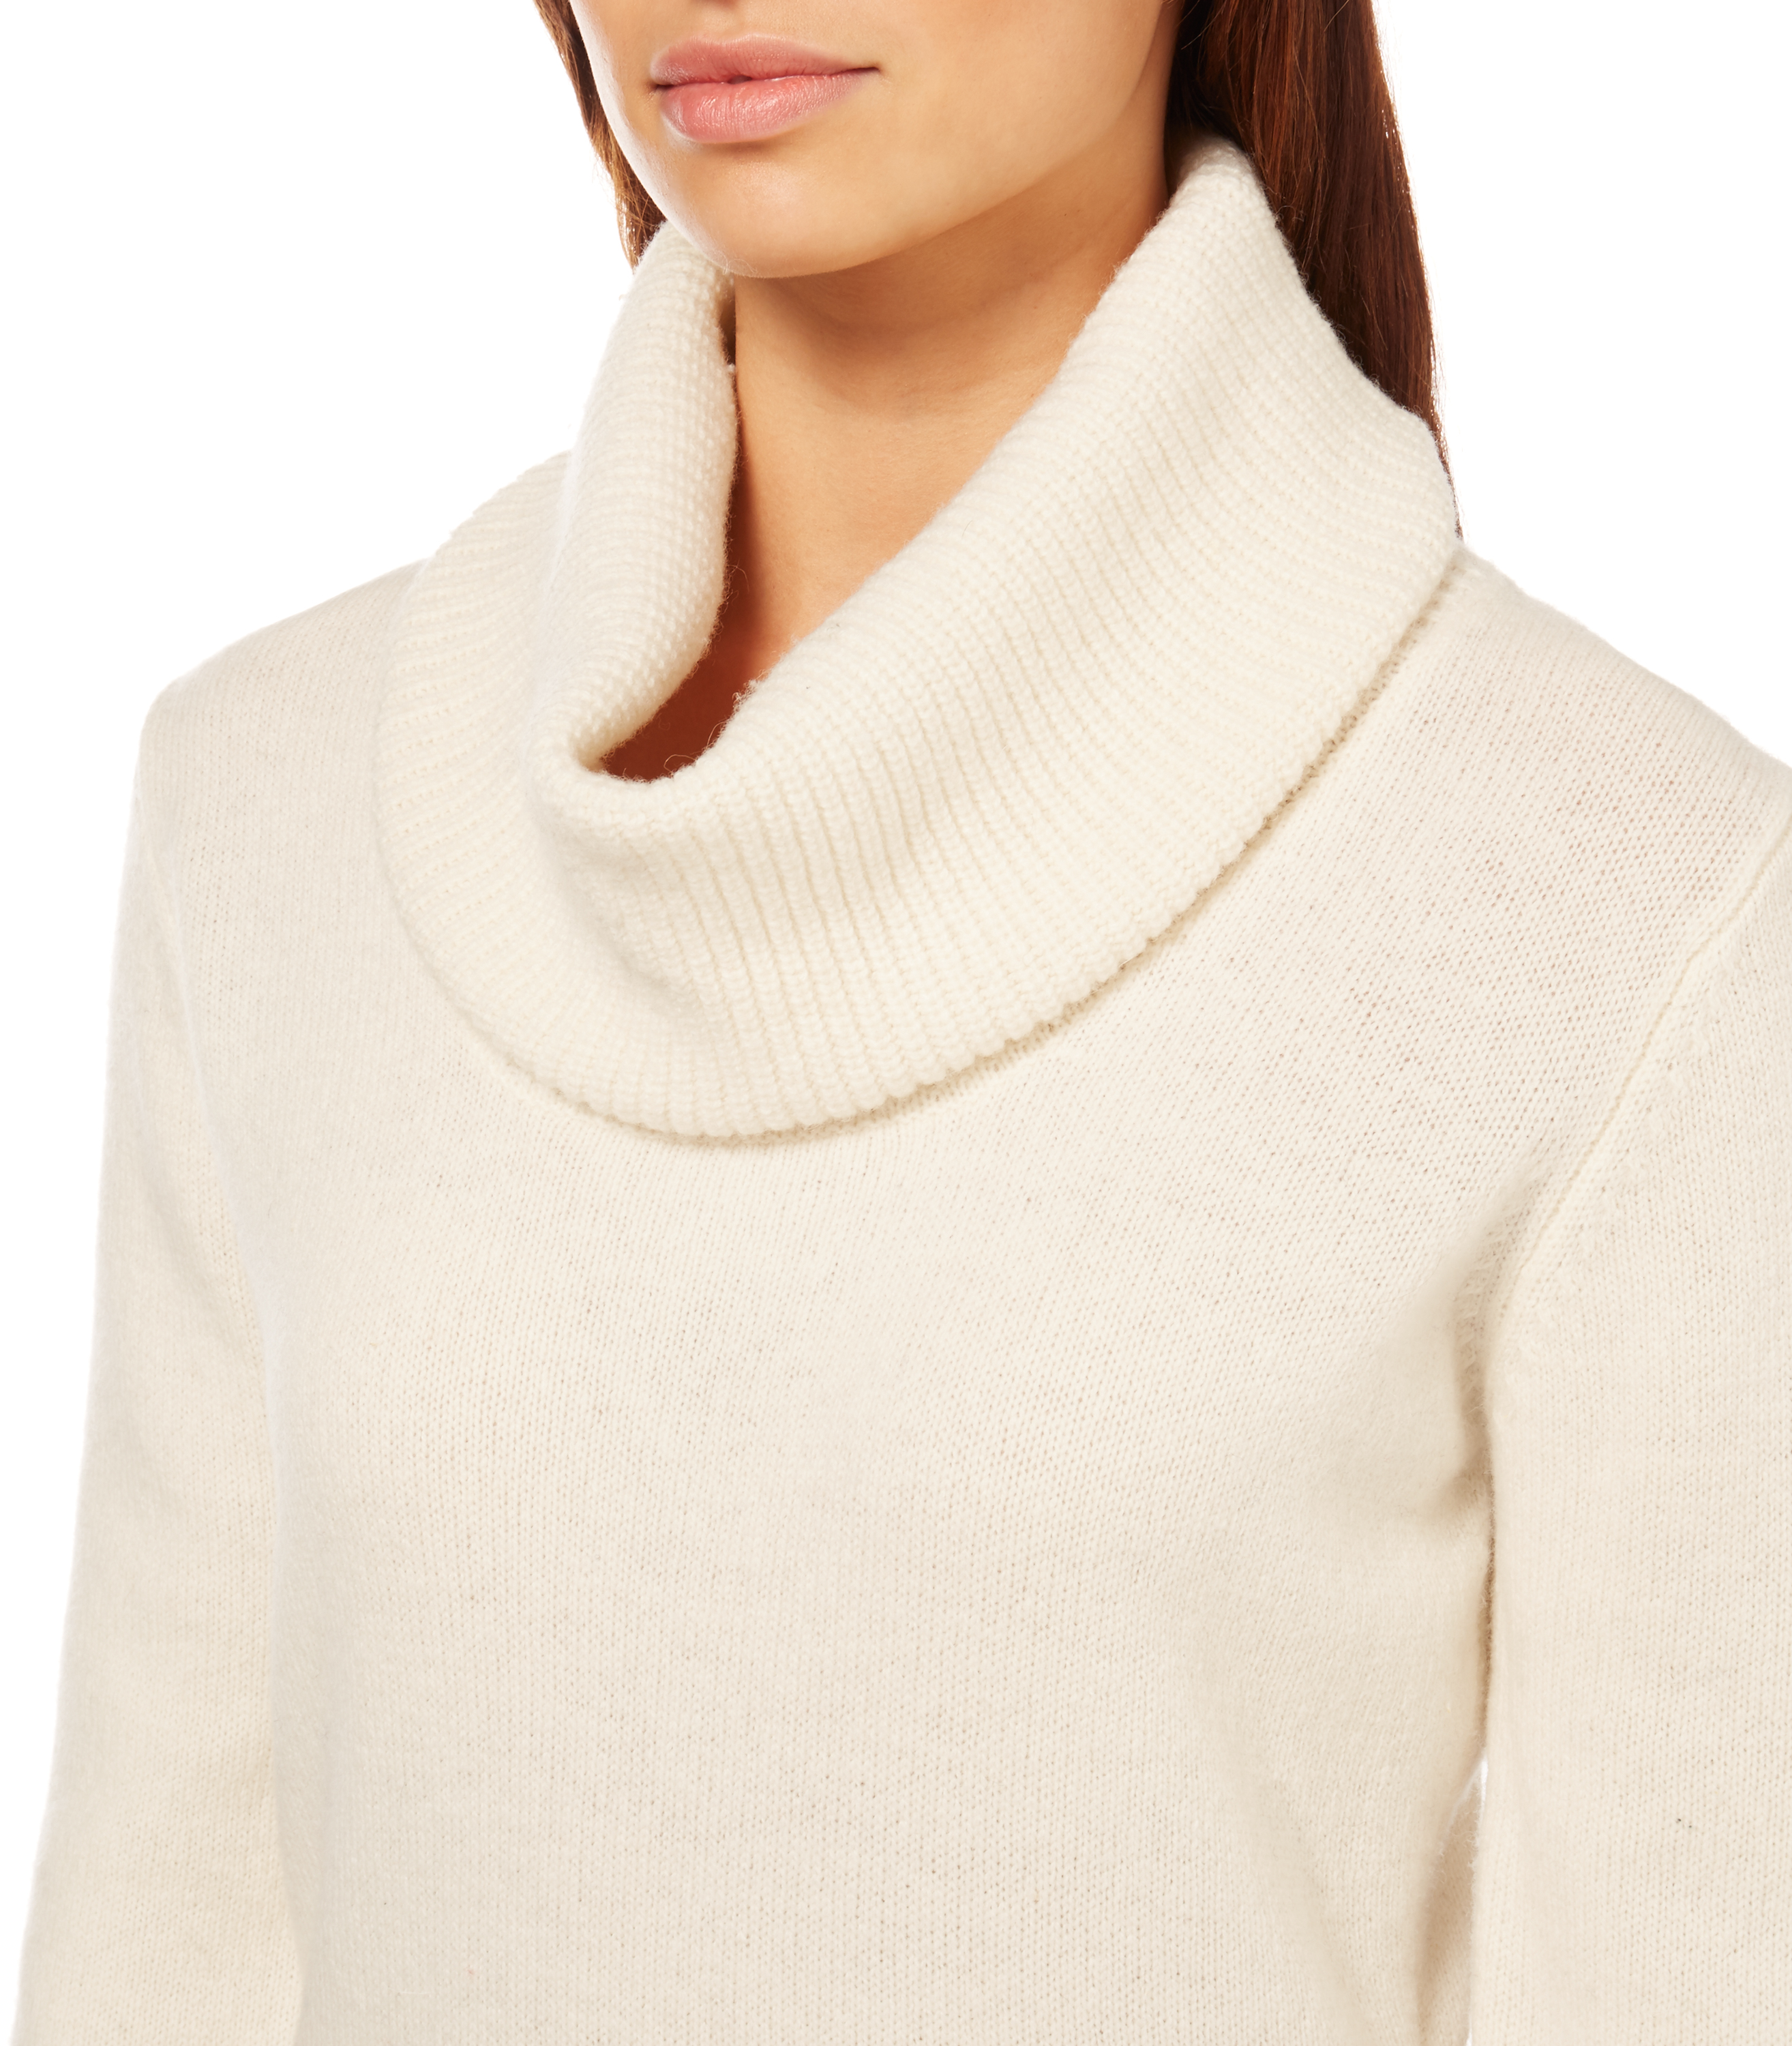 WoolOvers Womens Ladies Lambswool Chunky Cowl Neck Jumper Sweater Knitted eBay